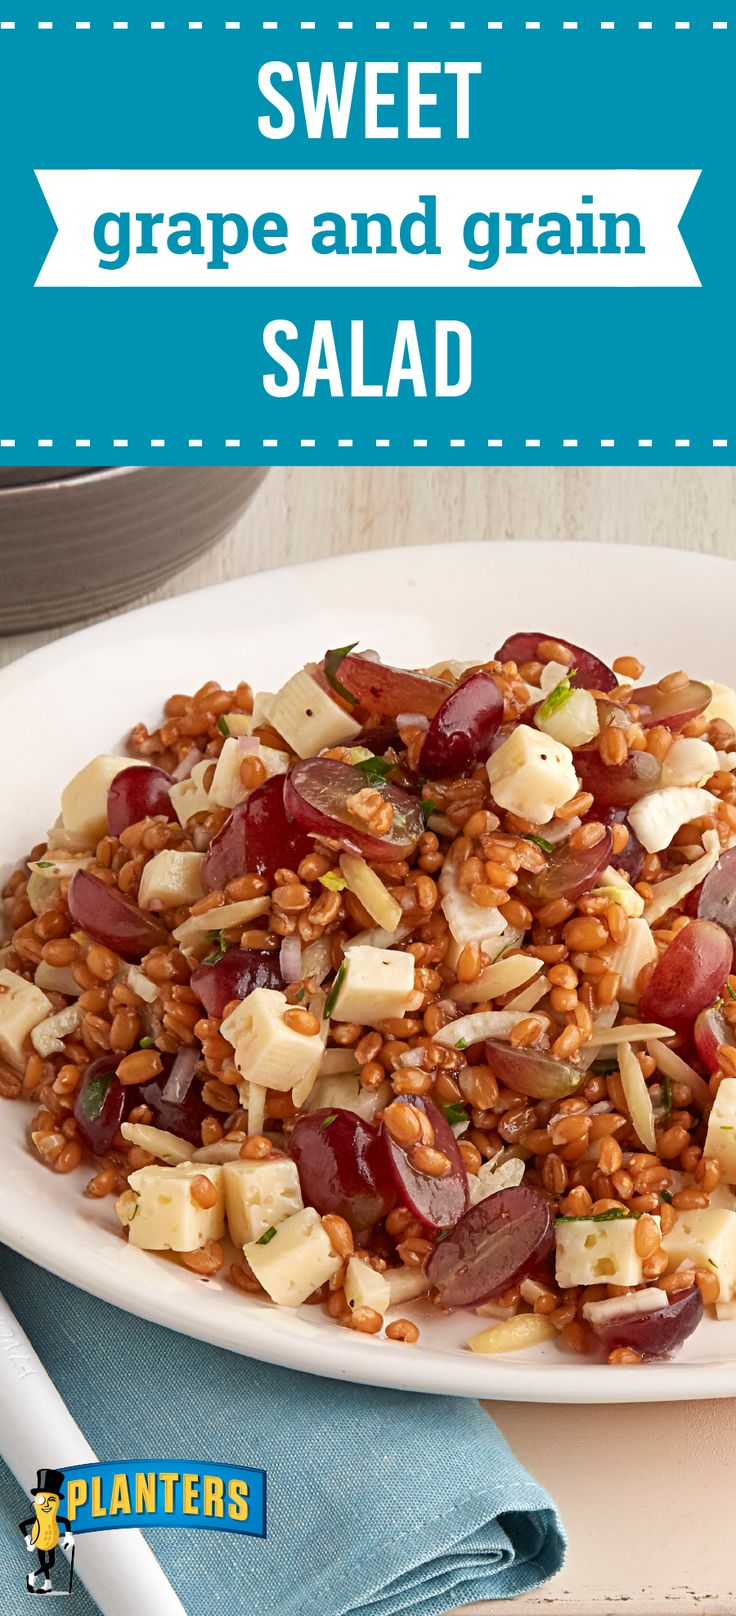 Sweet Grape and Grain Salad – Looking to try out a new recipe on your dinner table? Make sure to choose one with plenty of fresh flavor—like this hearty side dish! Grab the spelt berries, grapes, Havarti cheese, and slivered almonds to get started.